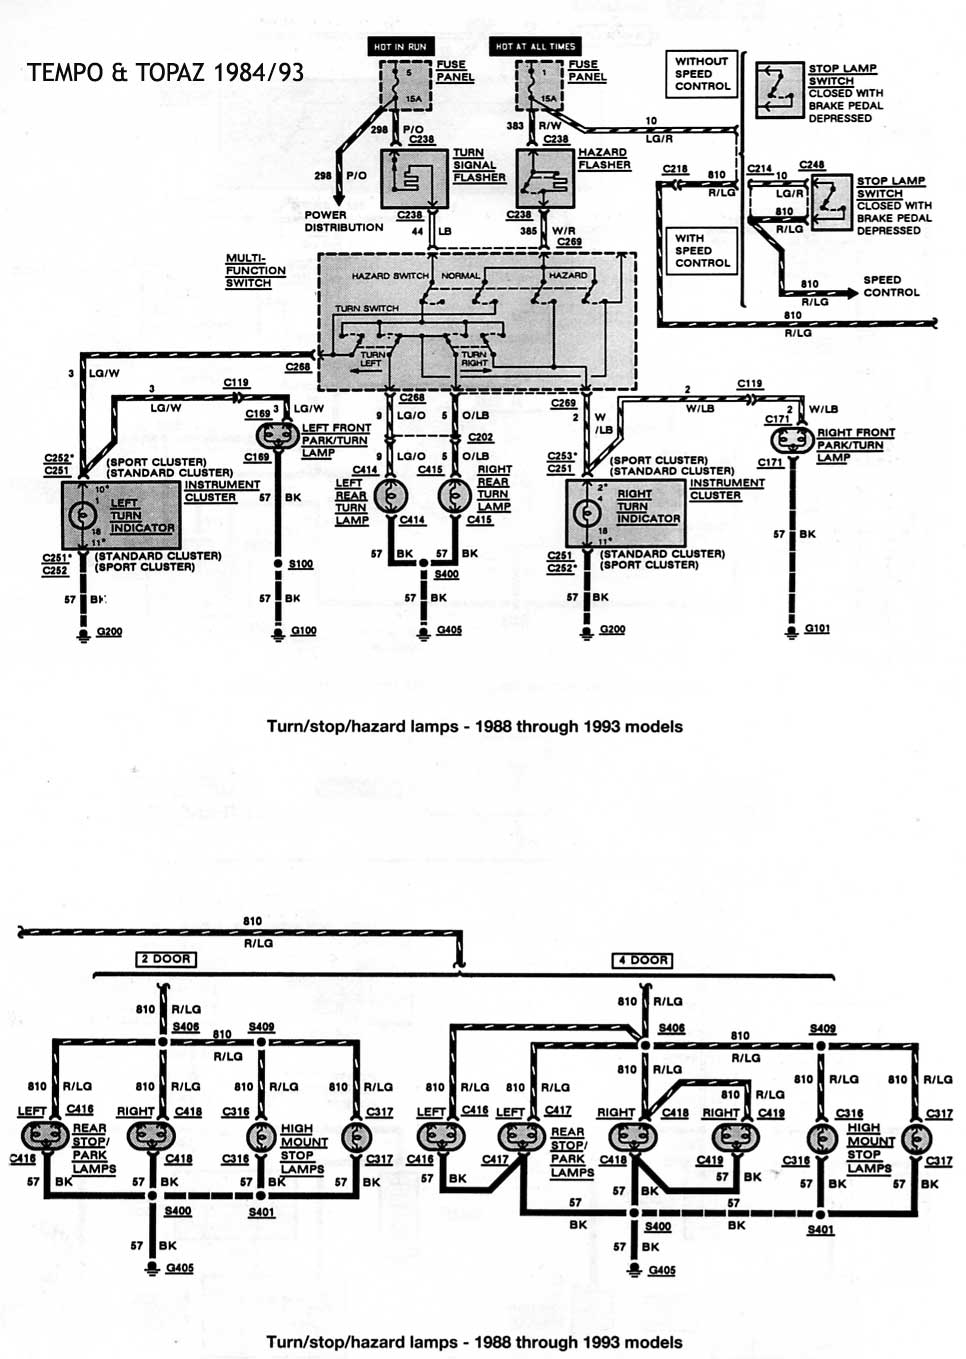 1986 Jeep Cj7 6 Cylinder Engine besides 54xqf 09 Mercury 90 Hp Elpto Stroke Motor Wasn T Winterized besides Ftempaz1 additionally Lincoln Mark Lt Fuse Box besides 4 stroke verado inline 6. on mercury 4 6 engine diagram